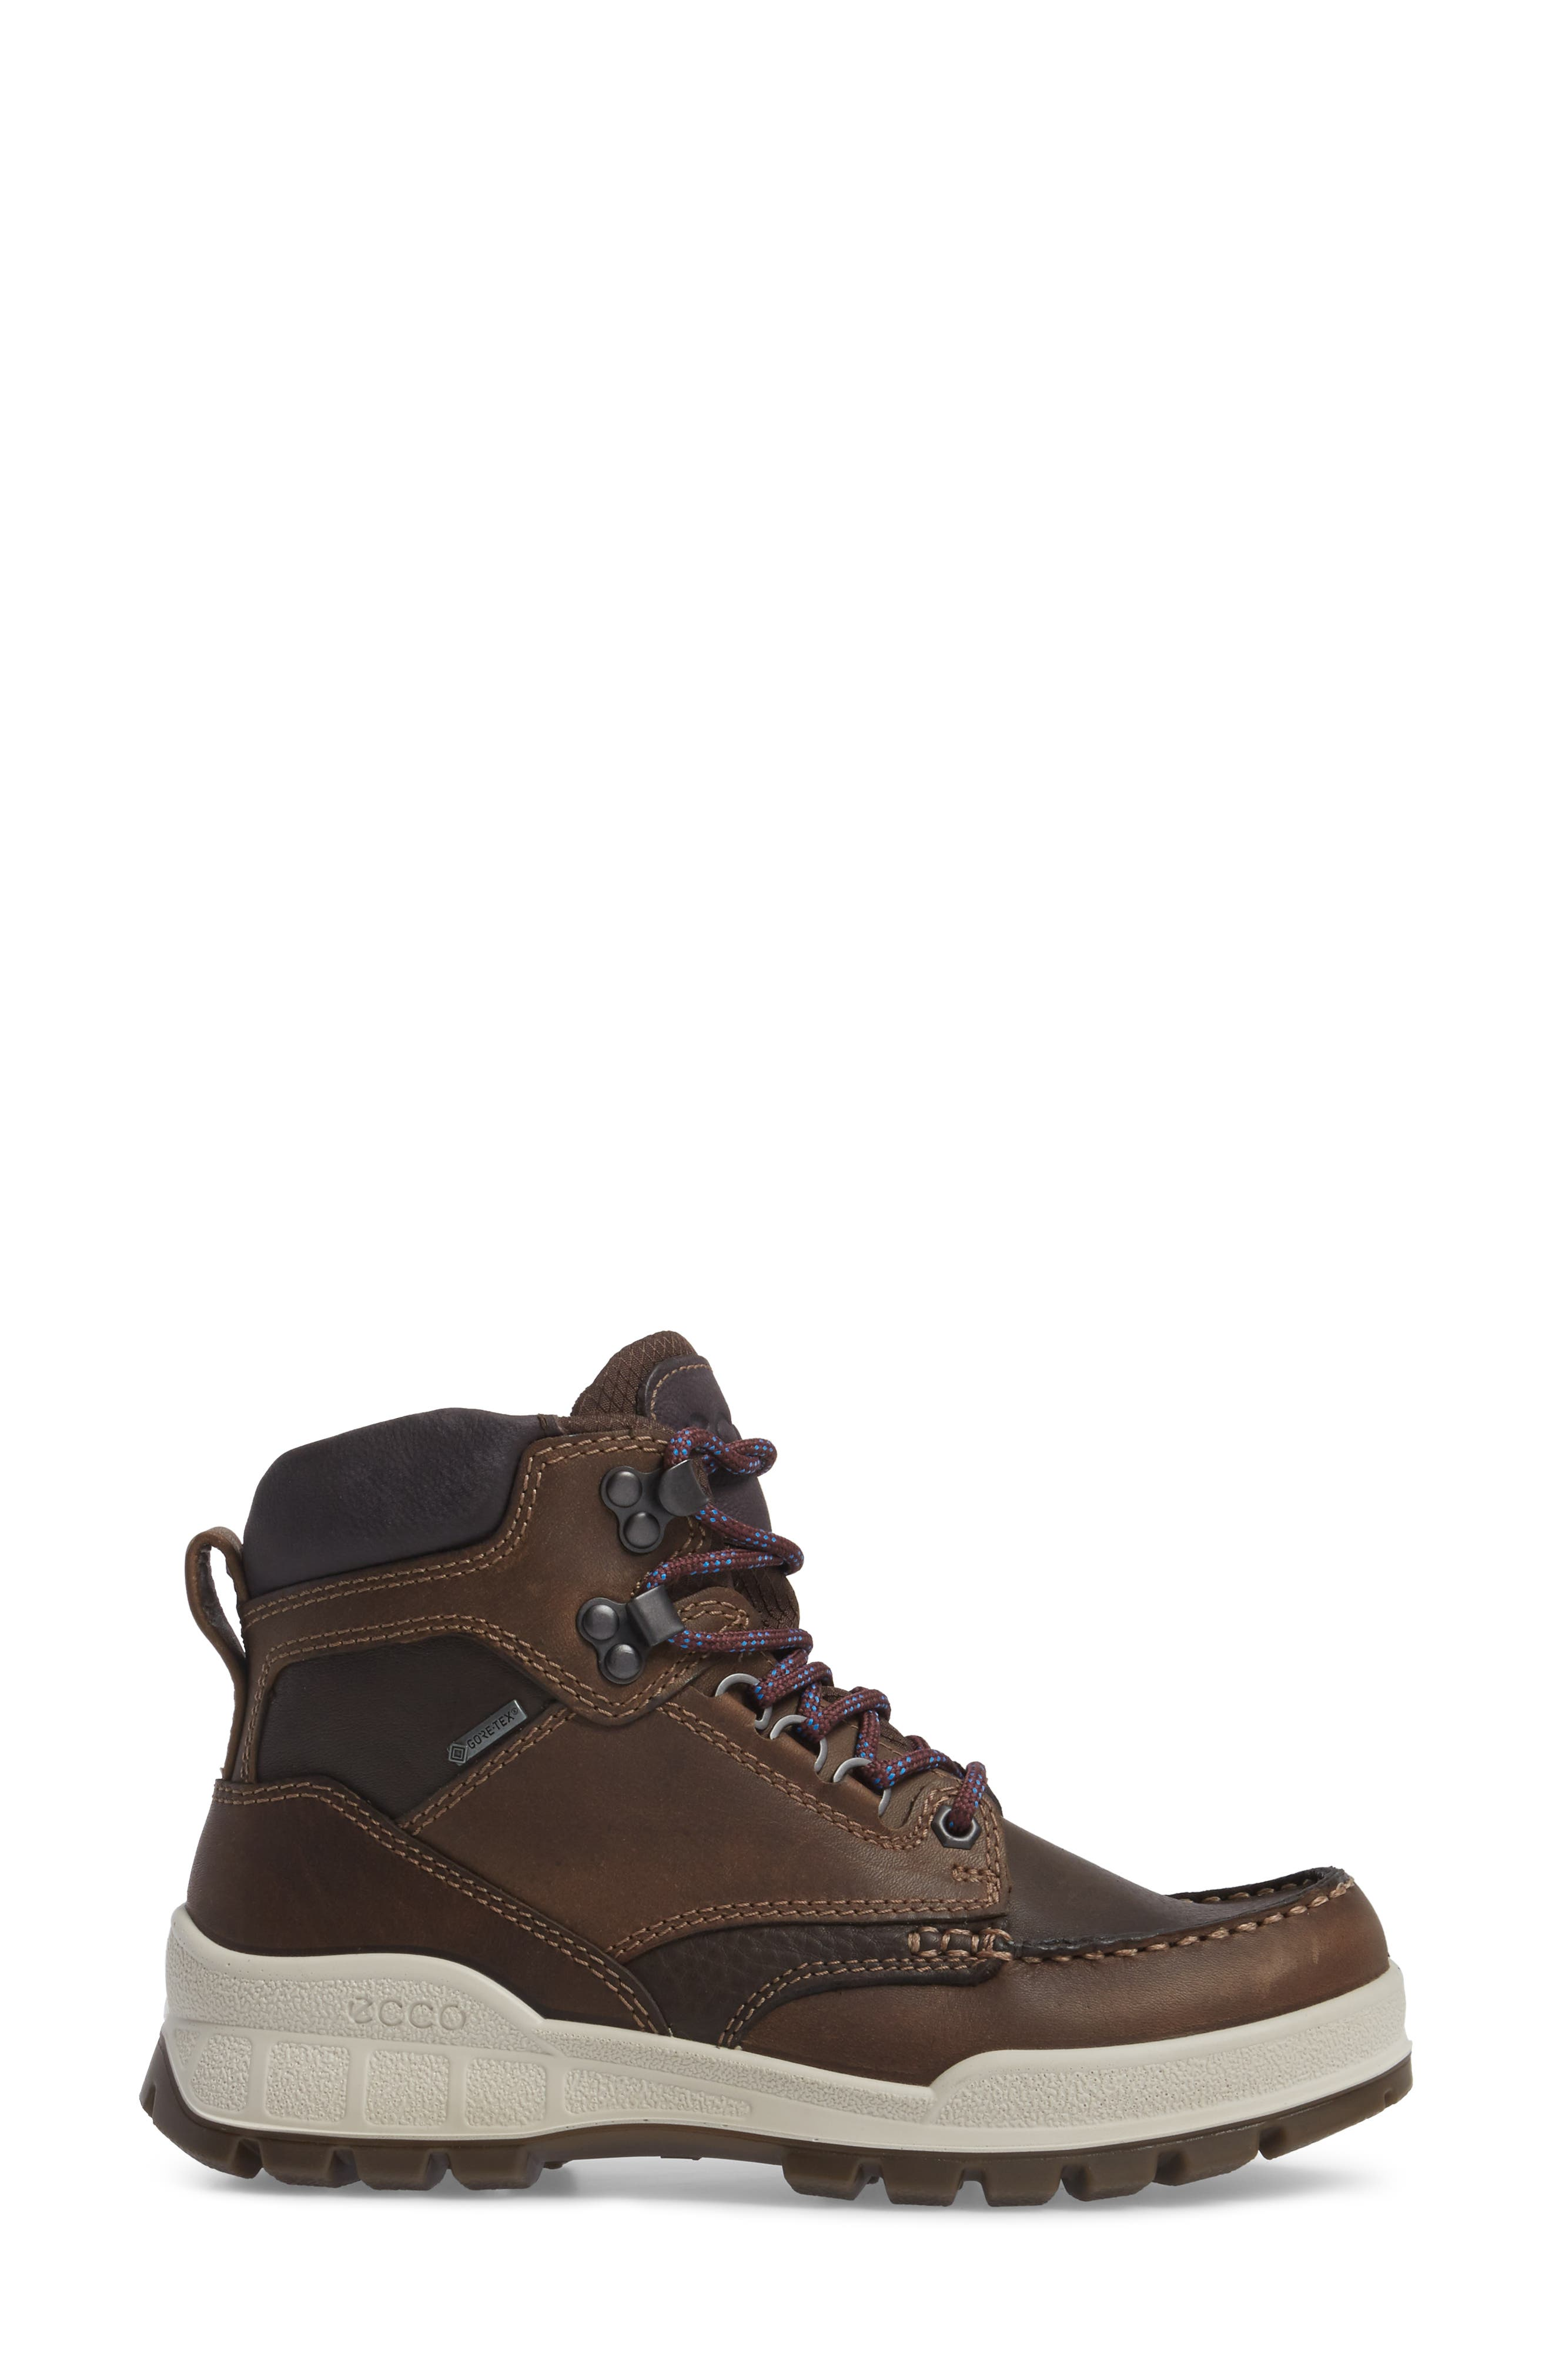 Track 25 Gore-Tex<sup>®</sup> Waterproof Hiking Boot,                             Alternate thumbnail 3, color,                             Cocoa Brown Leather